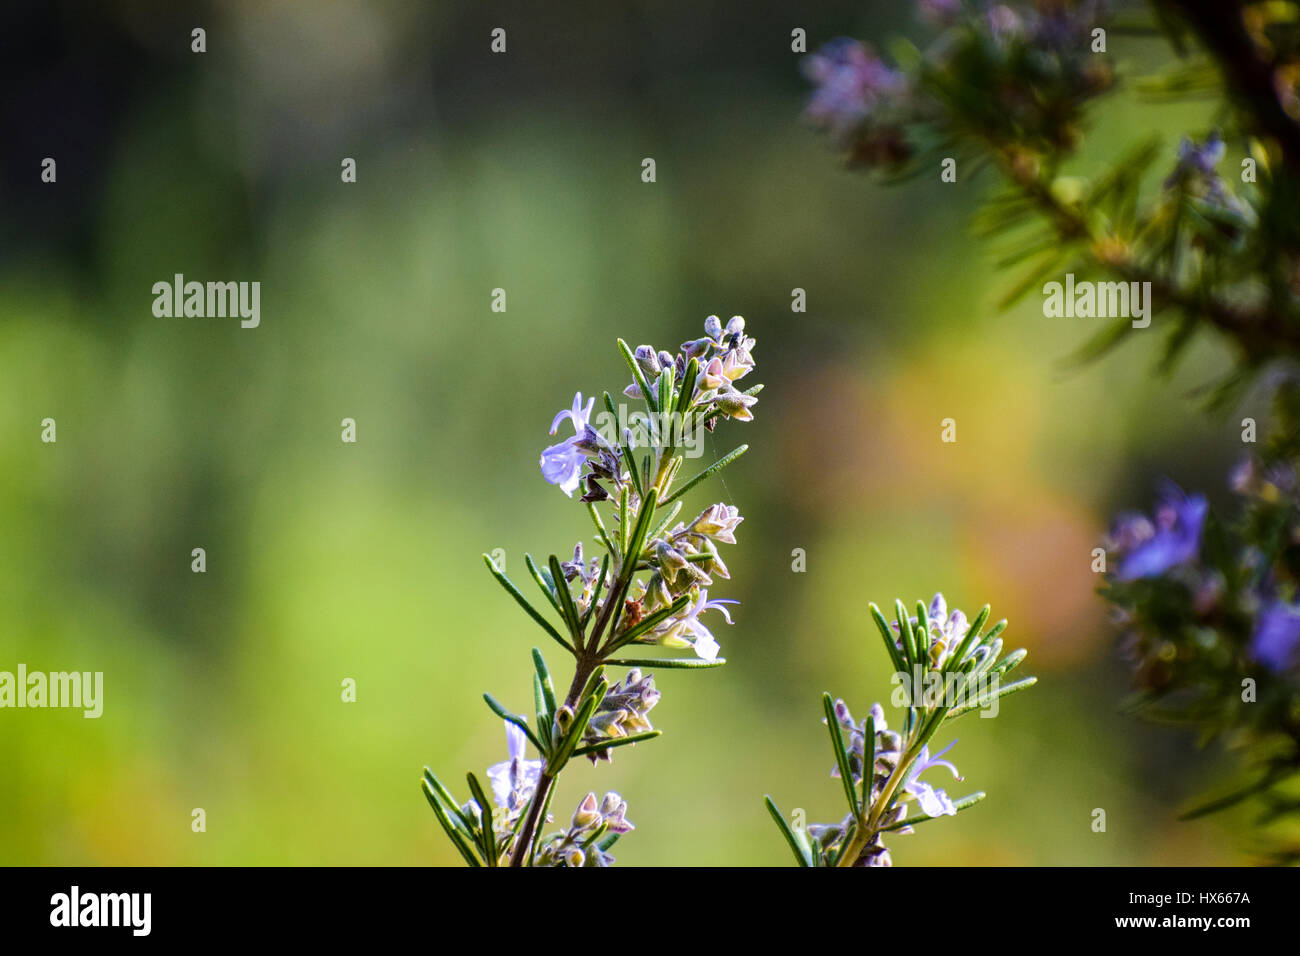 Violet flower in lushy green background - Stock Image